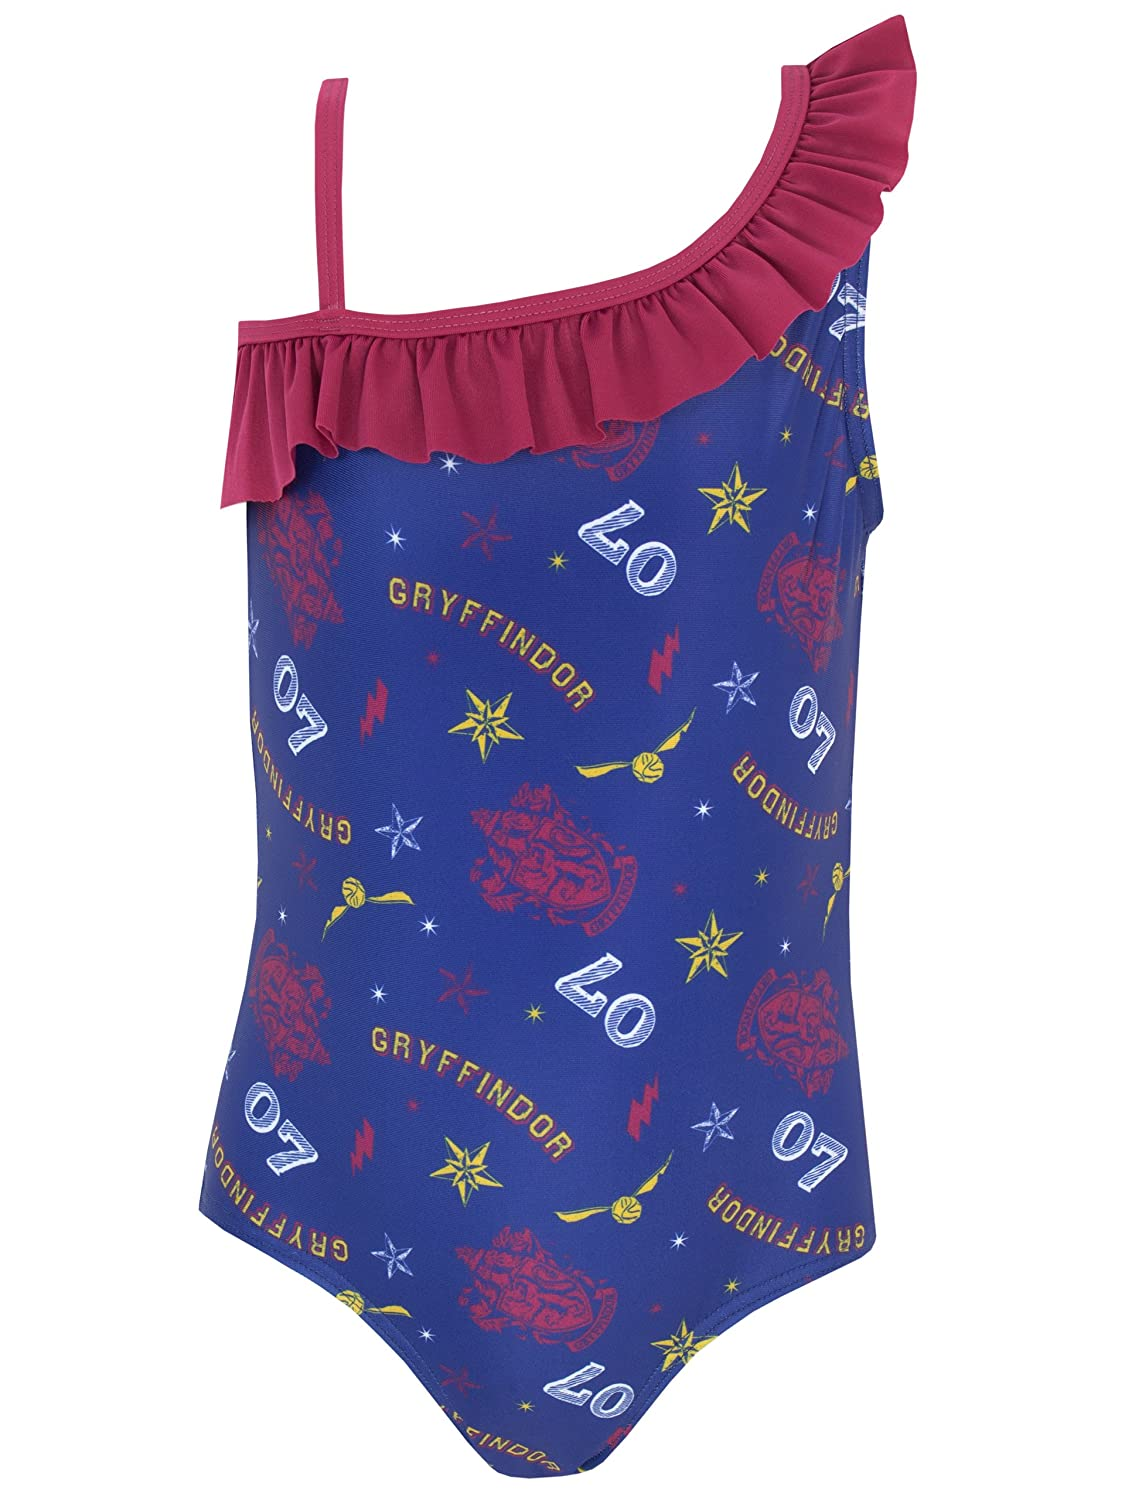 Harry Potter Girls Gryffindor Swimsuit